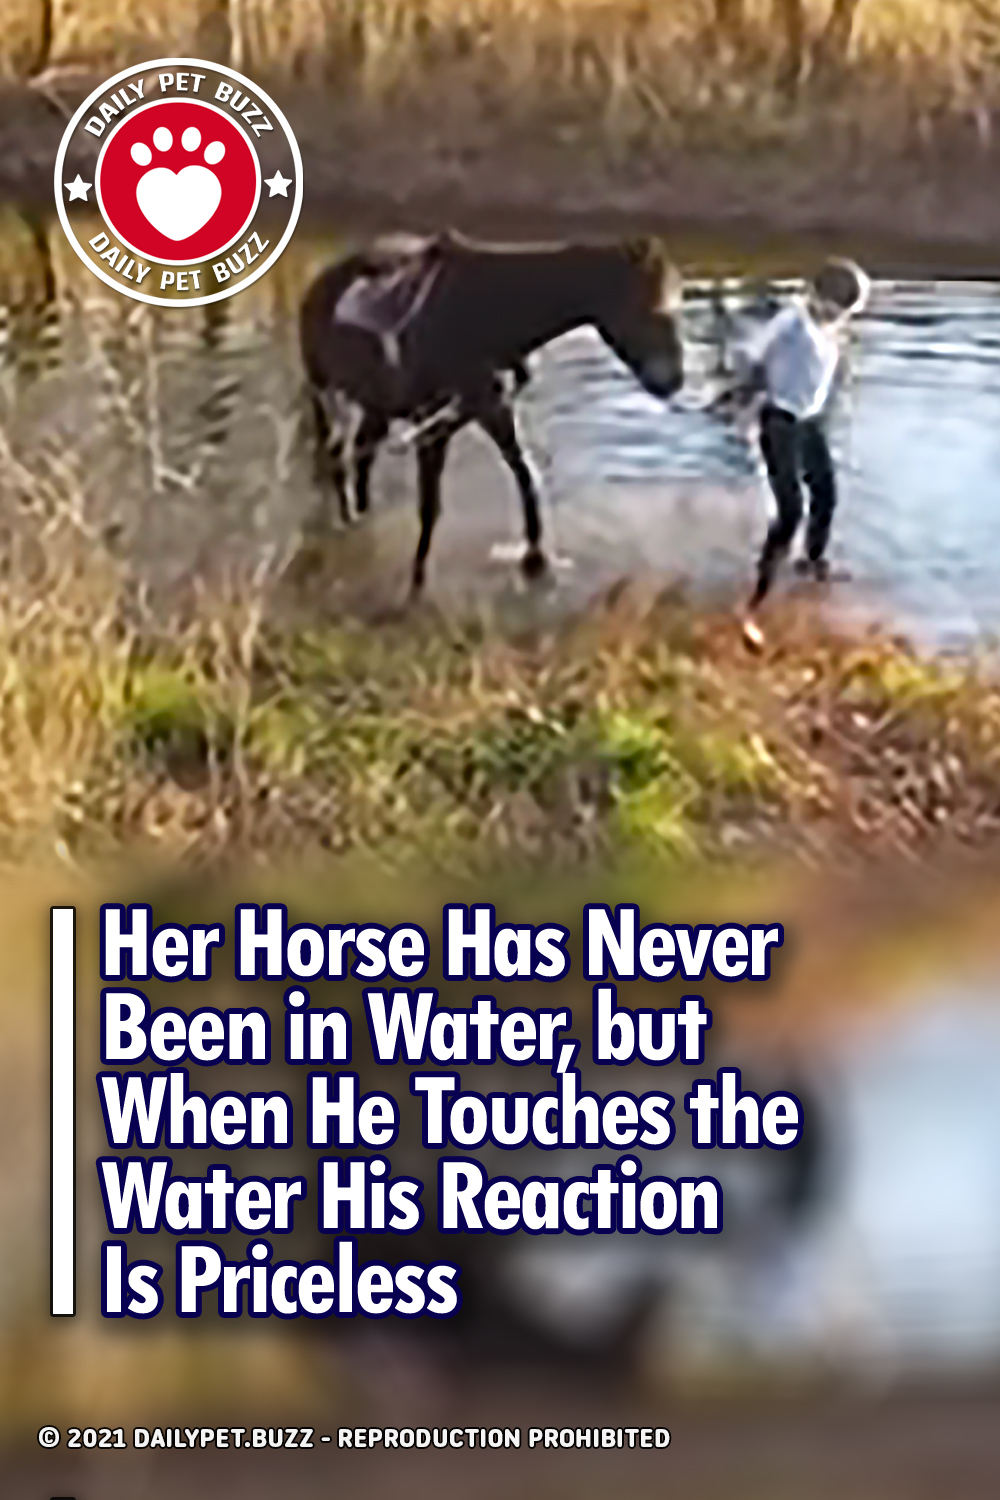 Her Horse Has Never Been in Water, but When He Touches the Water His Reaction Is Priceless